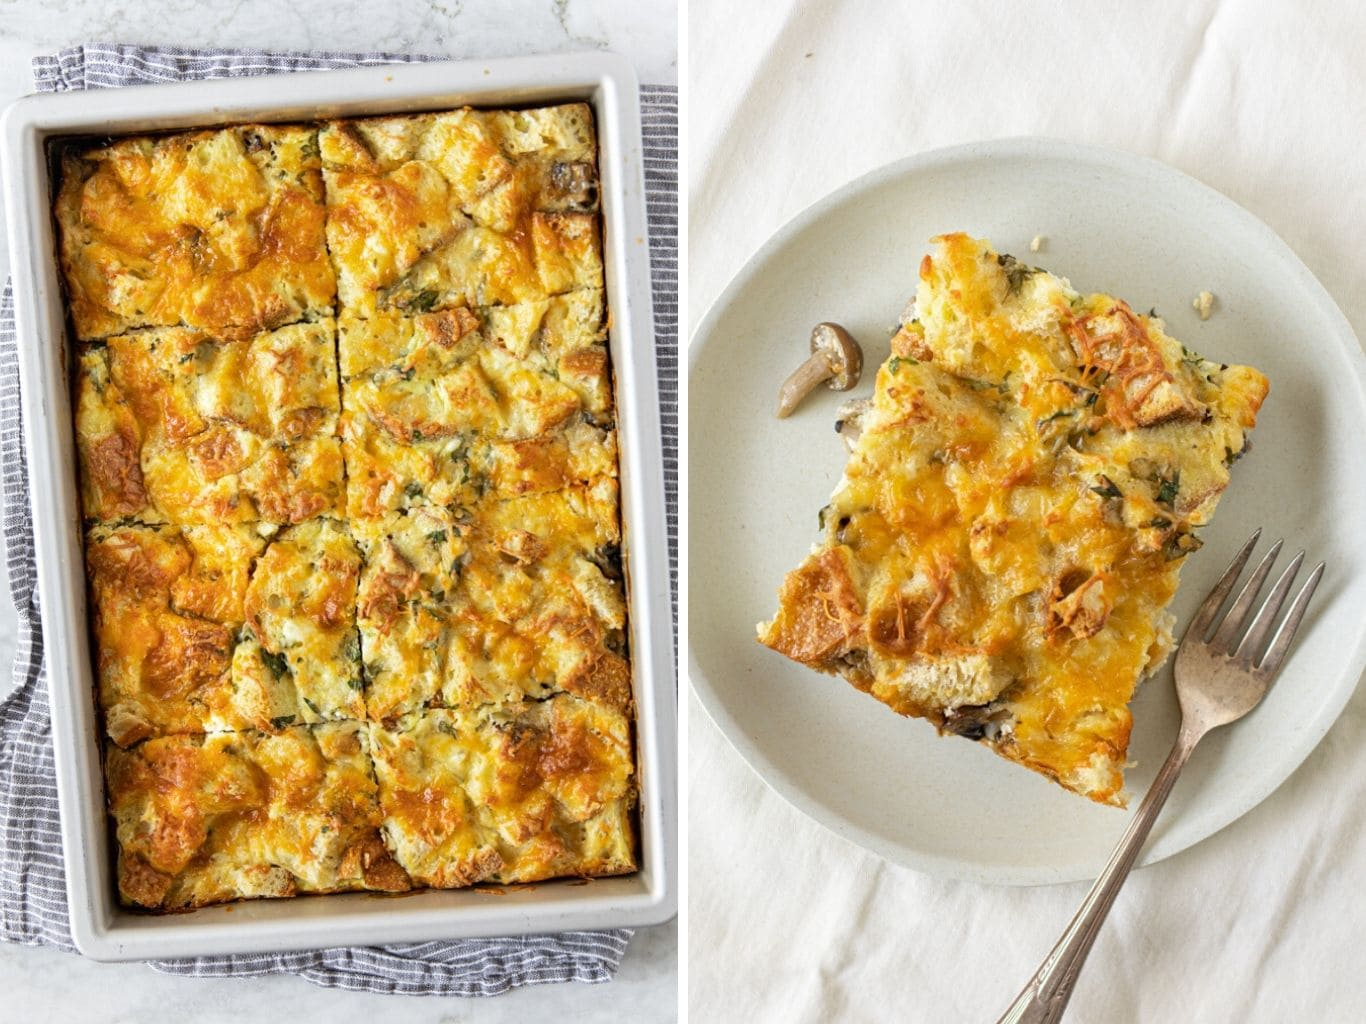 two photos showing a baking pan with mushroom ricotta bread pudding (strata) and another photo with a slice on a plate with fork